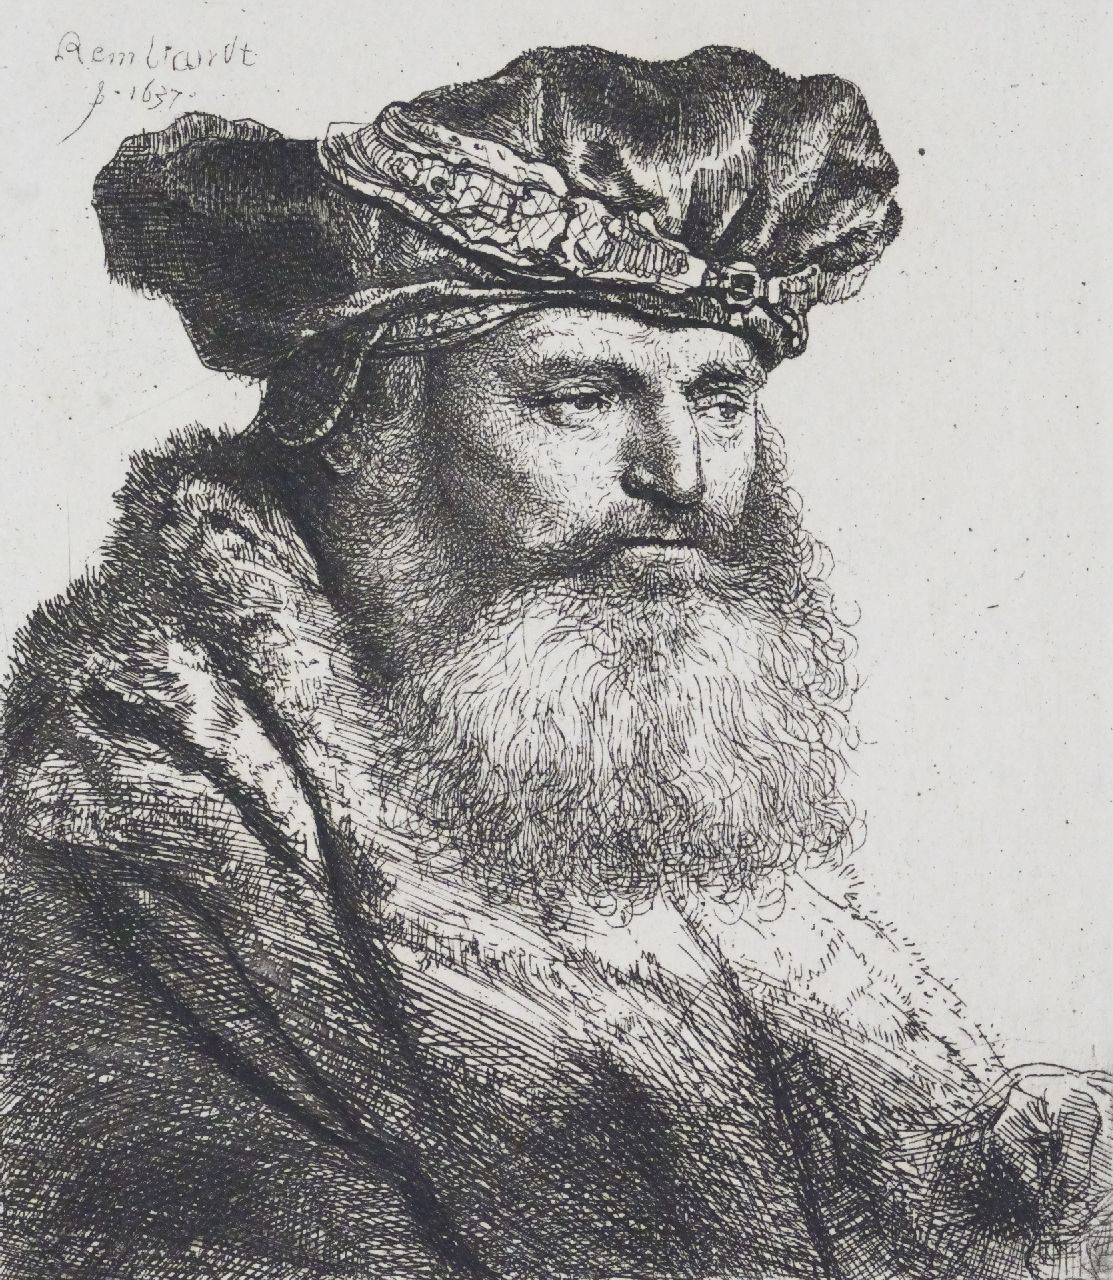 Rembrandt (Rembrandt Harmensz. van Rijn)   | Rembrandt (Rembrandt Harmensz. van Rijn) | Prints and Multiples offered for sale | Bearded nan in a velvet cap with a jewel clasp, etching on paper 9.5 x 8.2 cm, signed u.l. in the plate and dated 1637 in the plate